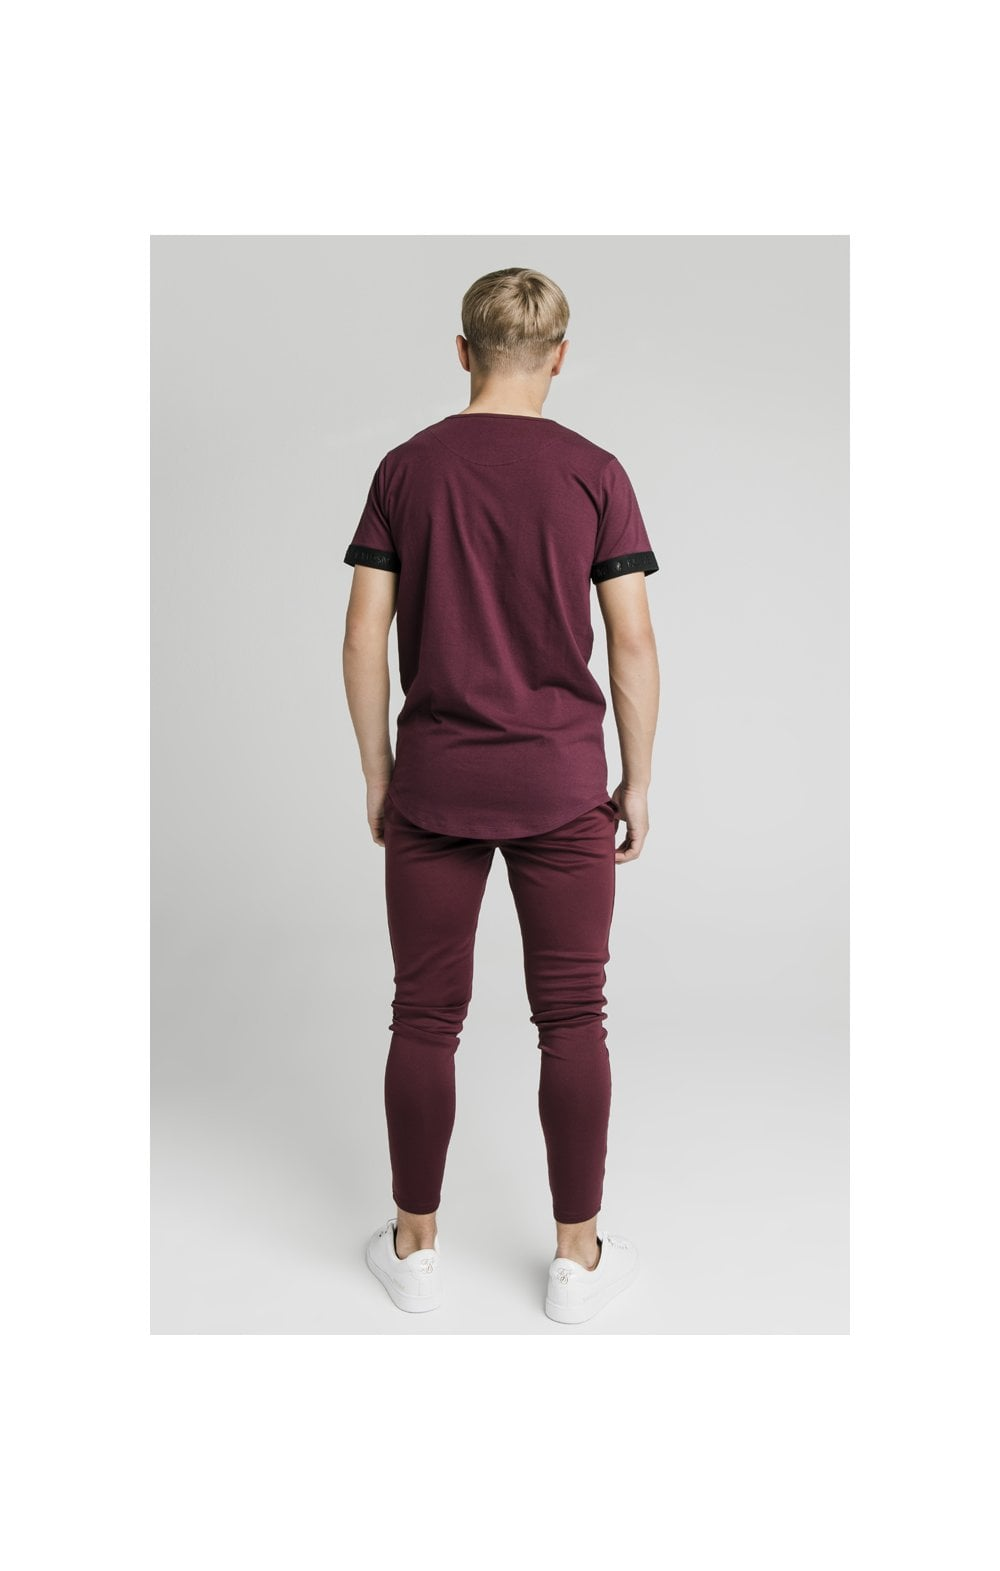 Load image into Gallery viewer, Illusive London Agility Track Pants - Burgundy (7)